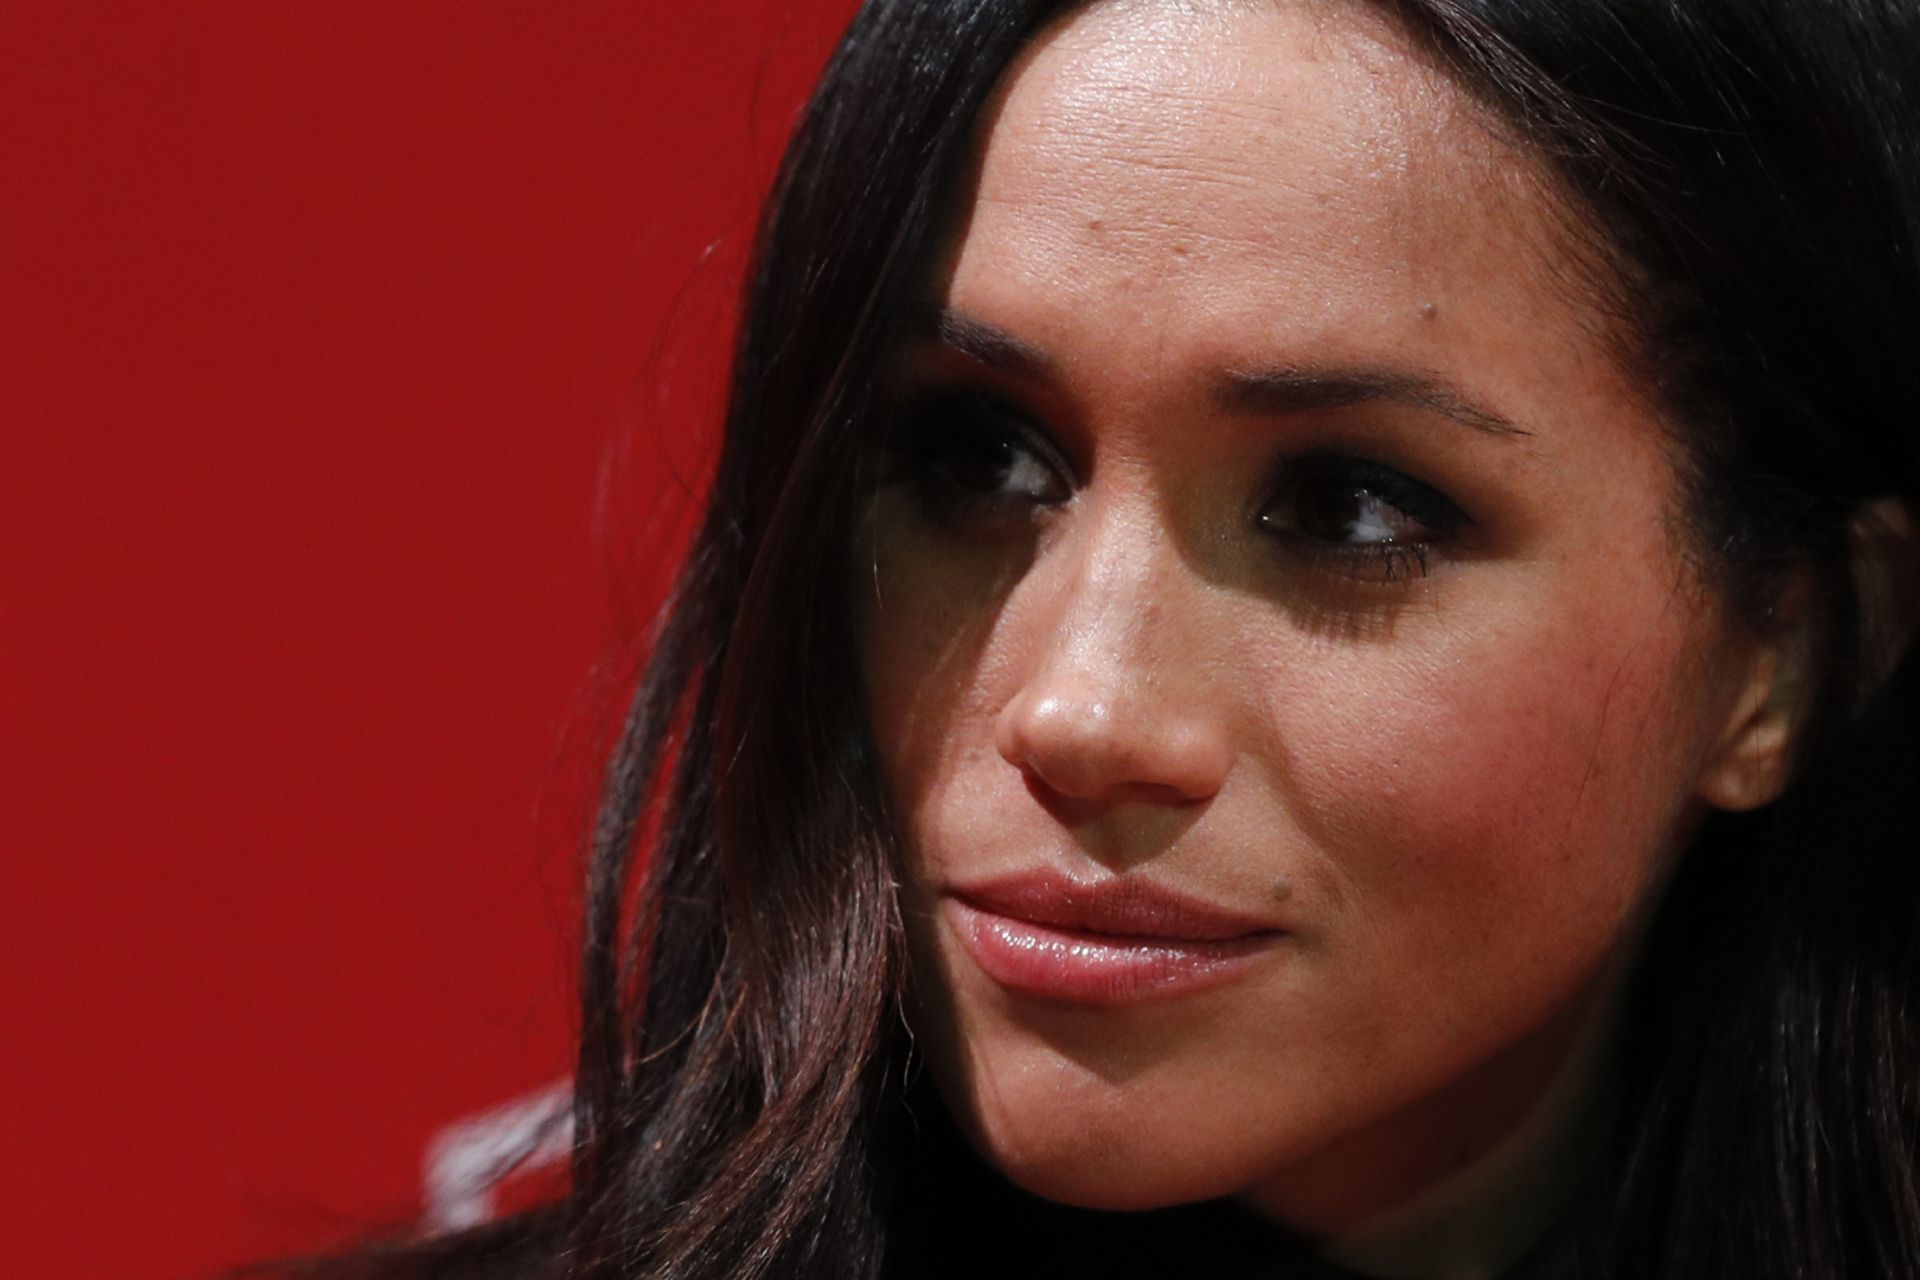 (FILES) In this file photo taken on December 01, 2017 Britain's Prince Harry's fiancee US actress Meghan Markle gestures as they tour the Terrence Higgins Trust World AIDS Day charity fair at Nottingham Contemporary in Nottingham, central England, on December 1, 2017. - Meghan Markle has revealed she suffered a miscarriage in July this year, writing in the New York Times on November 25, 2020 of the deep grief and loss she endured with her husband Prince Harry. (Photo by Adrian DENNIS / various sources / AFP